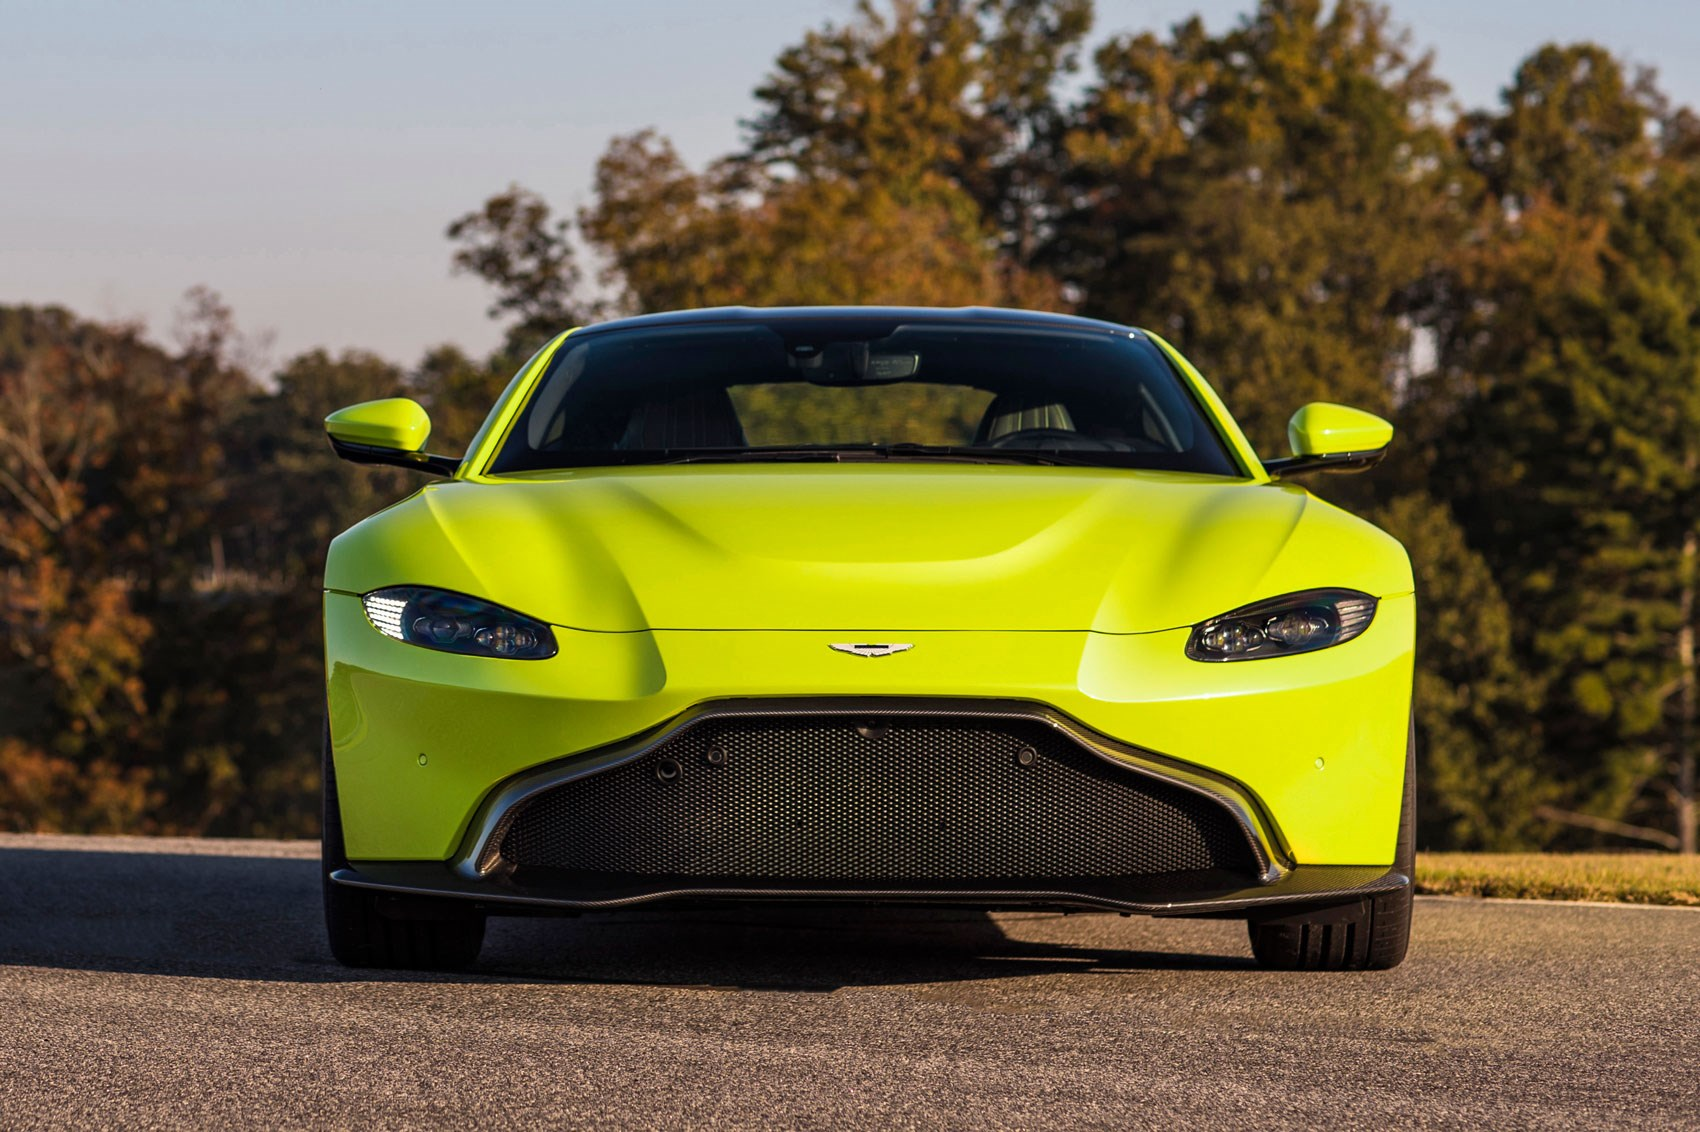 aston martin vantage 2018 side view. Inside The Cabin Of New 2018 Aston Martin Vantage: Yellow Trim Optional Vantage Side View